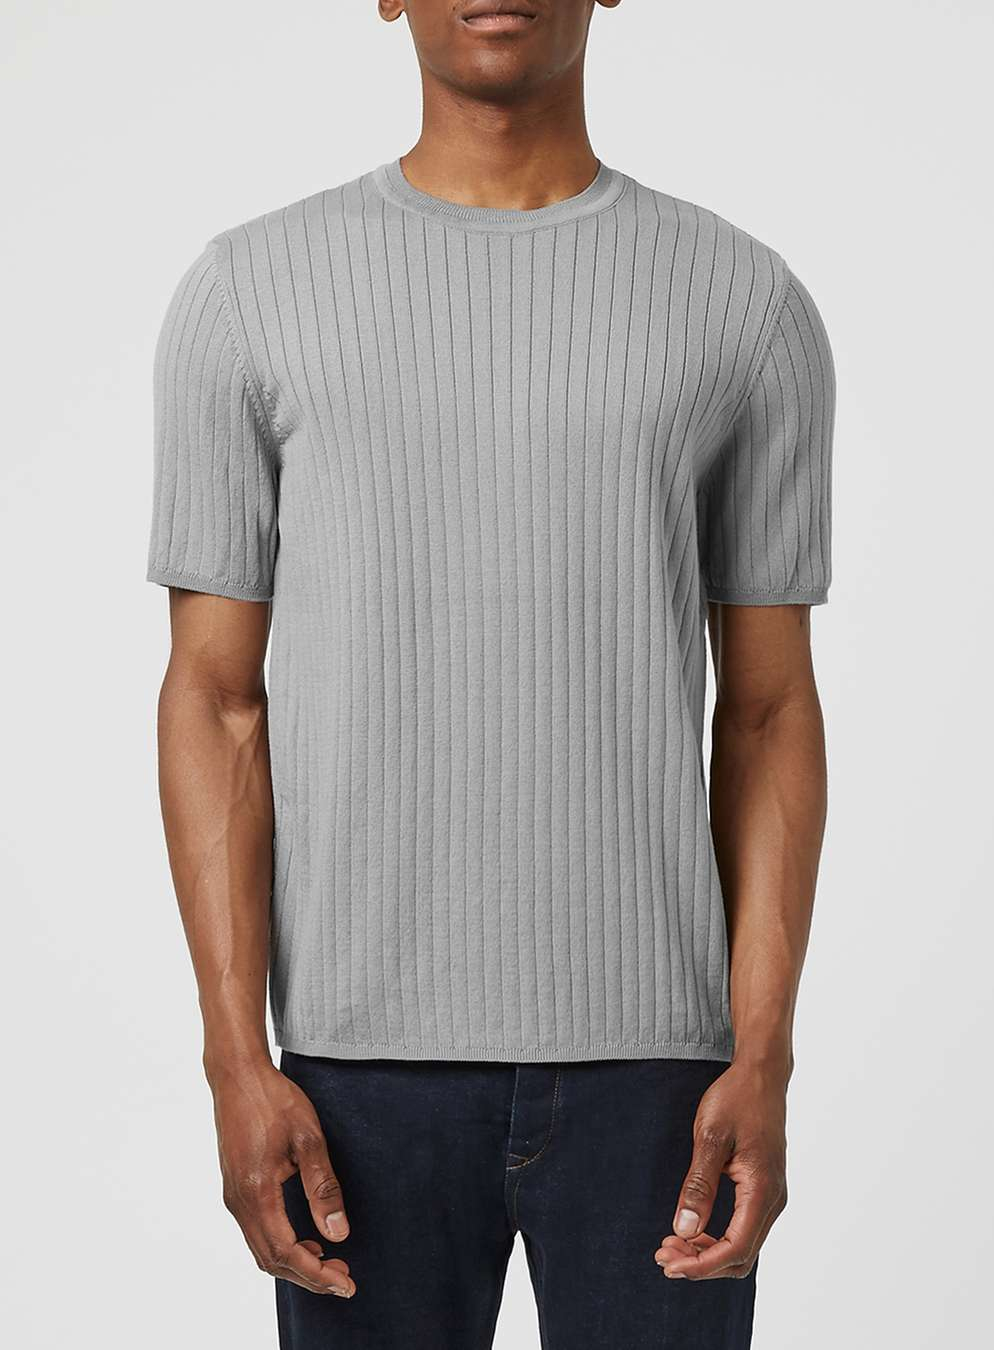 Topman grey ribbed textured knitted t shirt in gray for for Mens ribbed t shirts